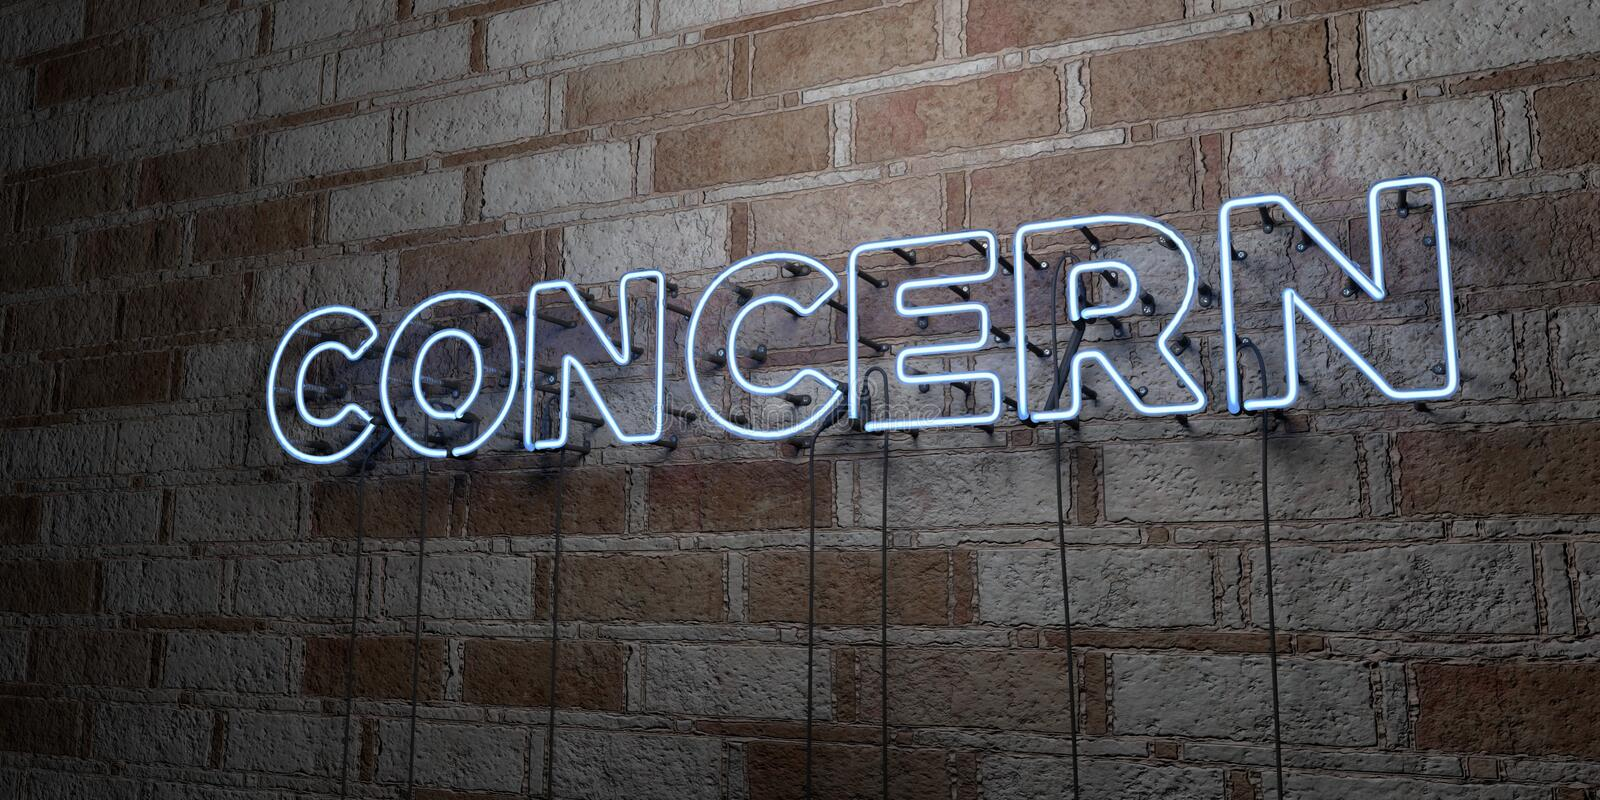 CONCERN - Glowing Neon Sign on stonework wall - 3D rendered royalty free stock illustration. Can be used for online banner ads and direct mailers vector illustration